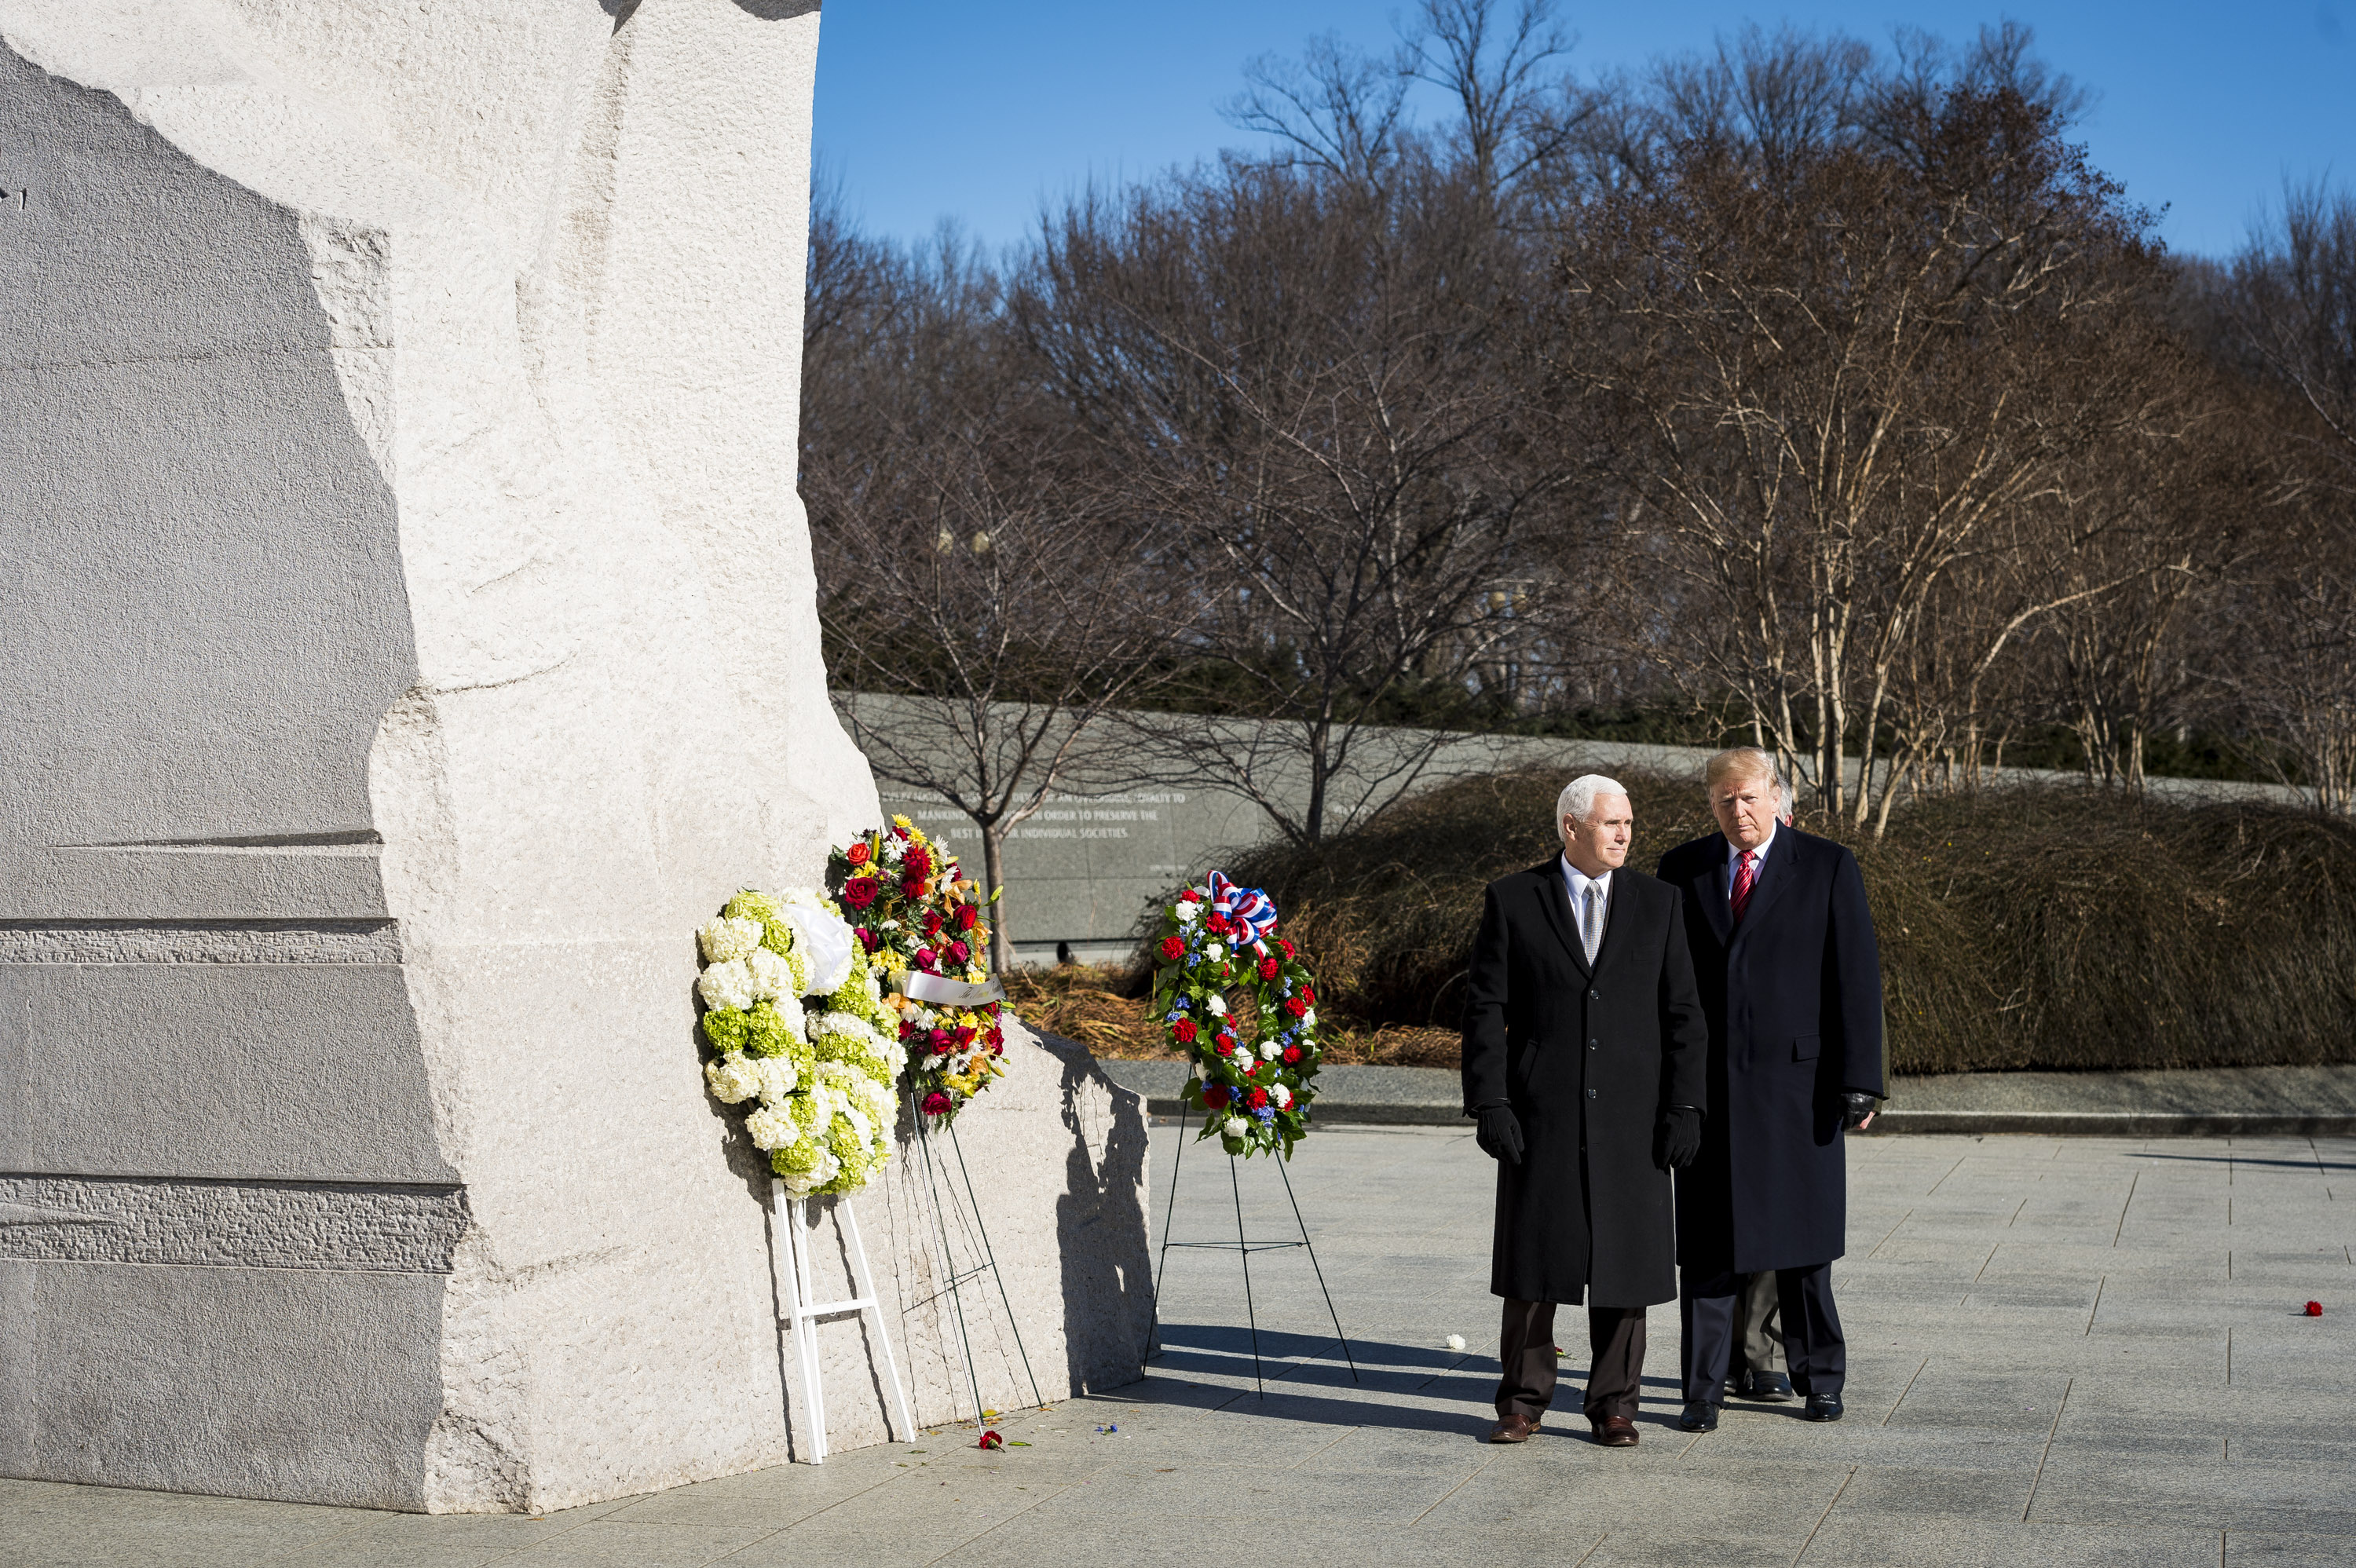 WASHINGTON, DC - JANUARY 21: President Donald Trump and Vice President Mike Pence visit the Martin Luther King Jr. Memorial on January 21, 2019 in Washington, DC. They placed a wreath to commemorate the slain civil rights leader. (Photo by Pete Marovich/Getty Images)